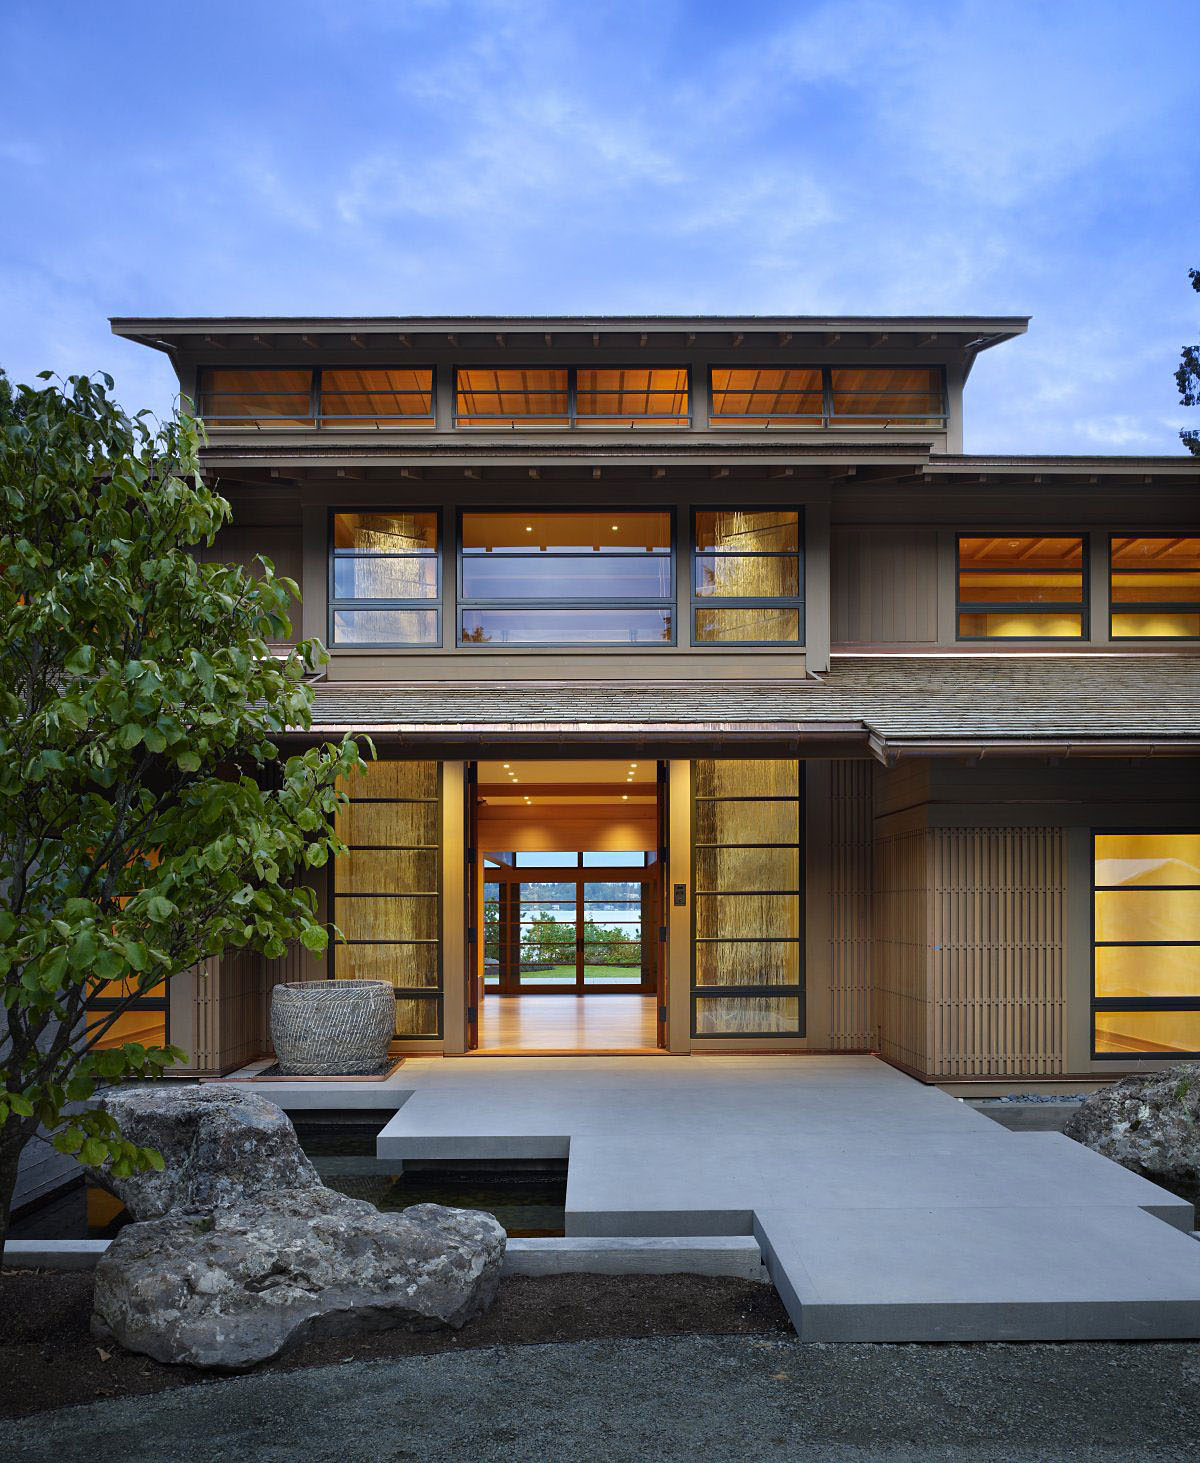 Contemporary house in seattle with japanese influence for Asian architecture house design